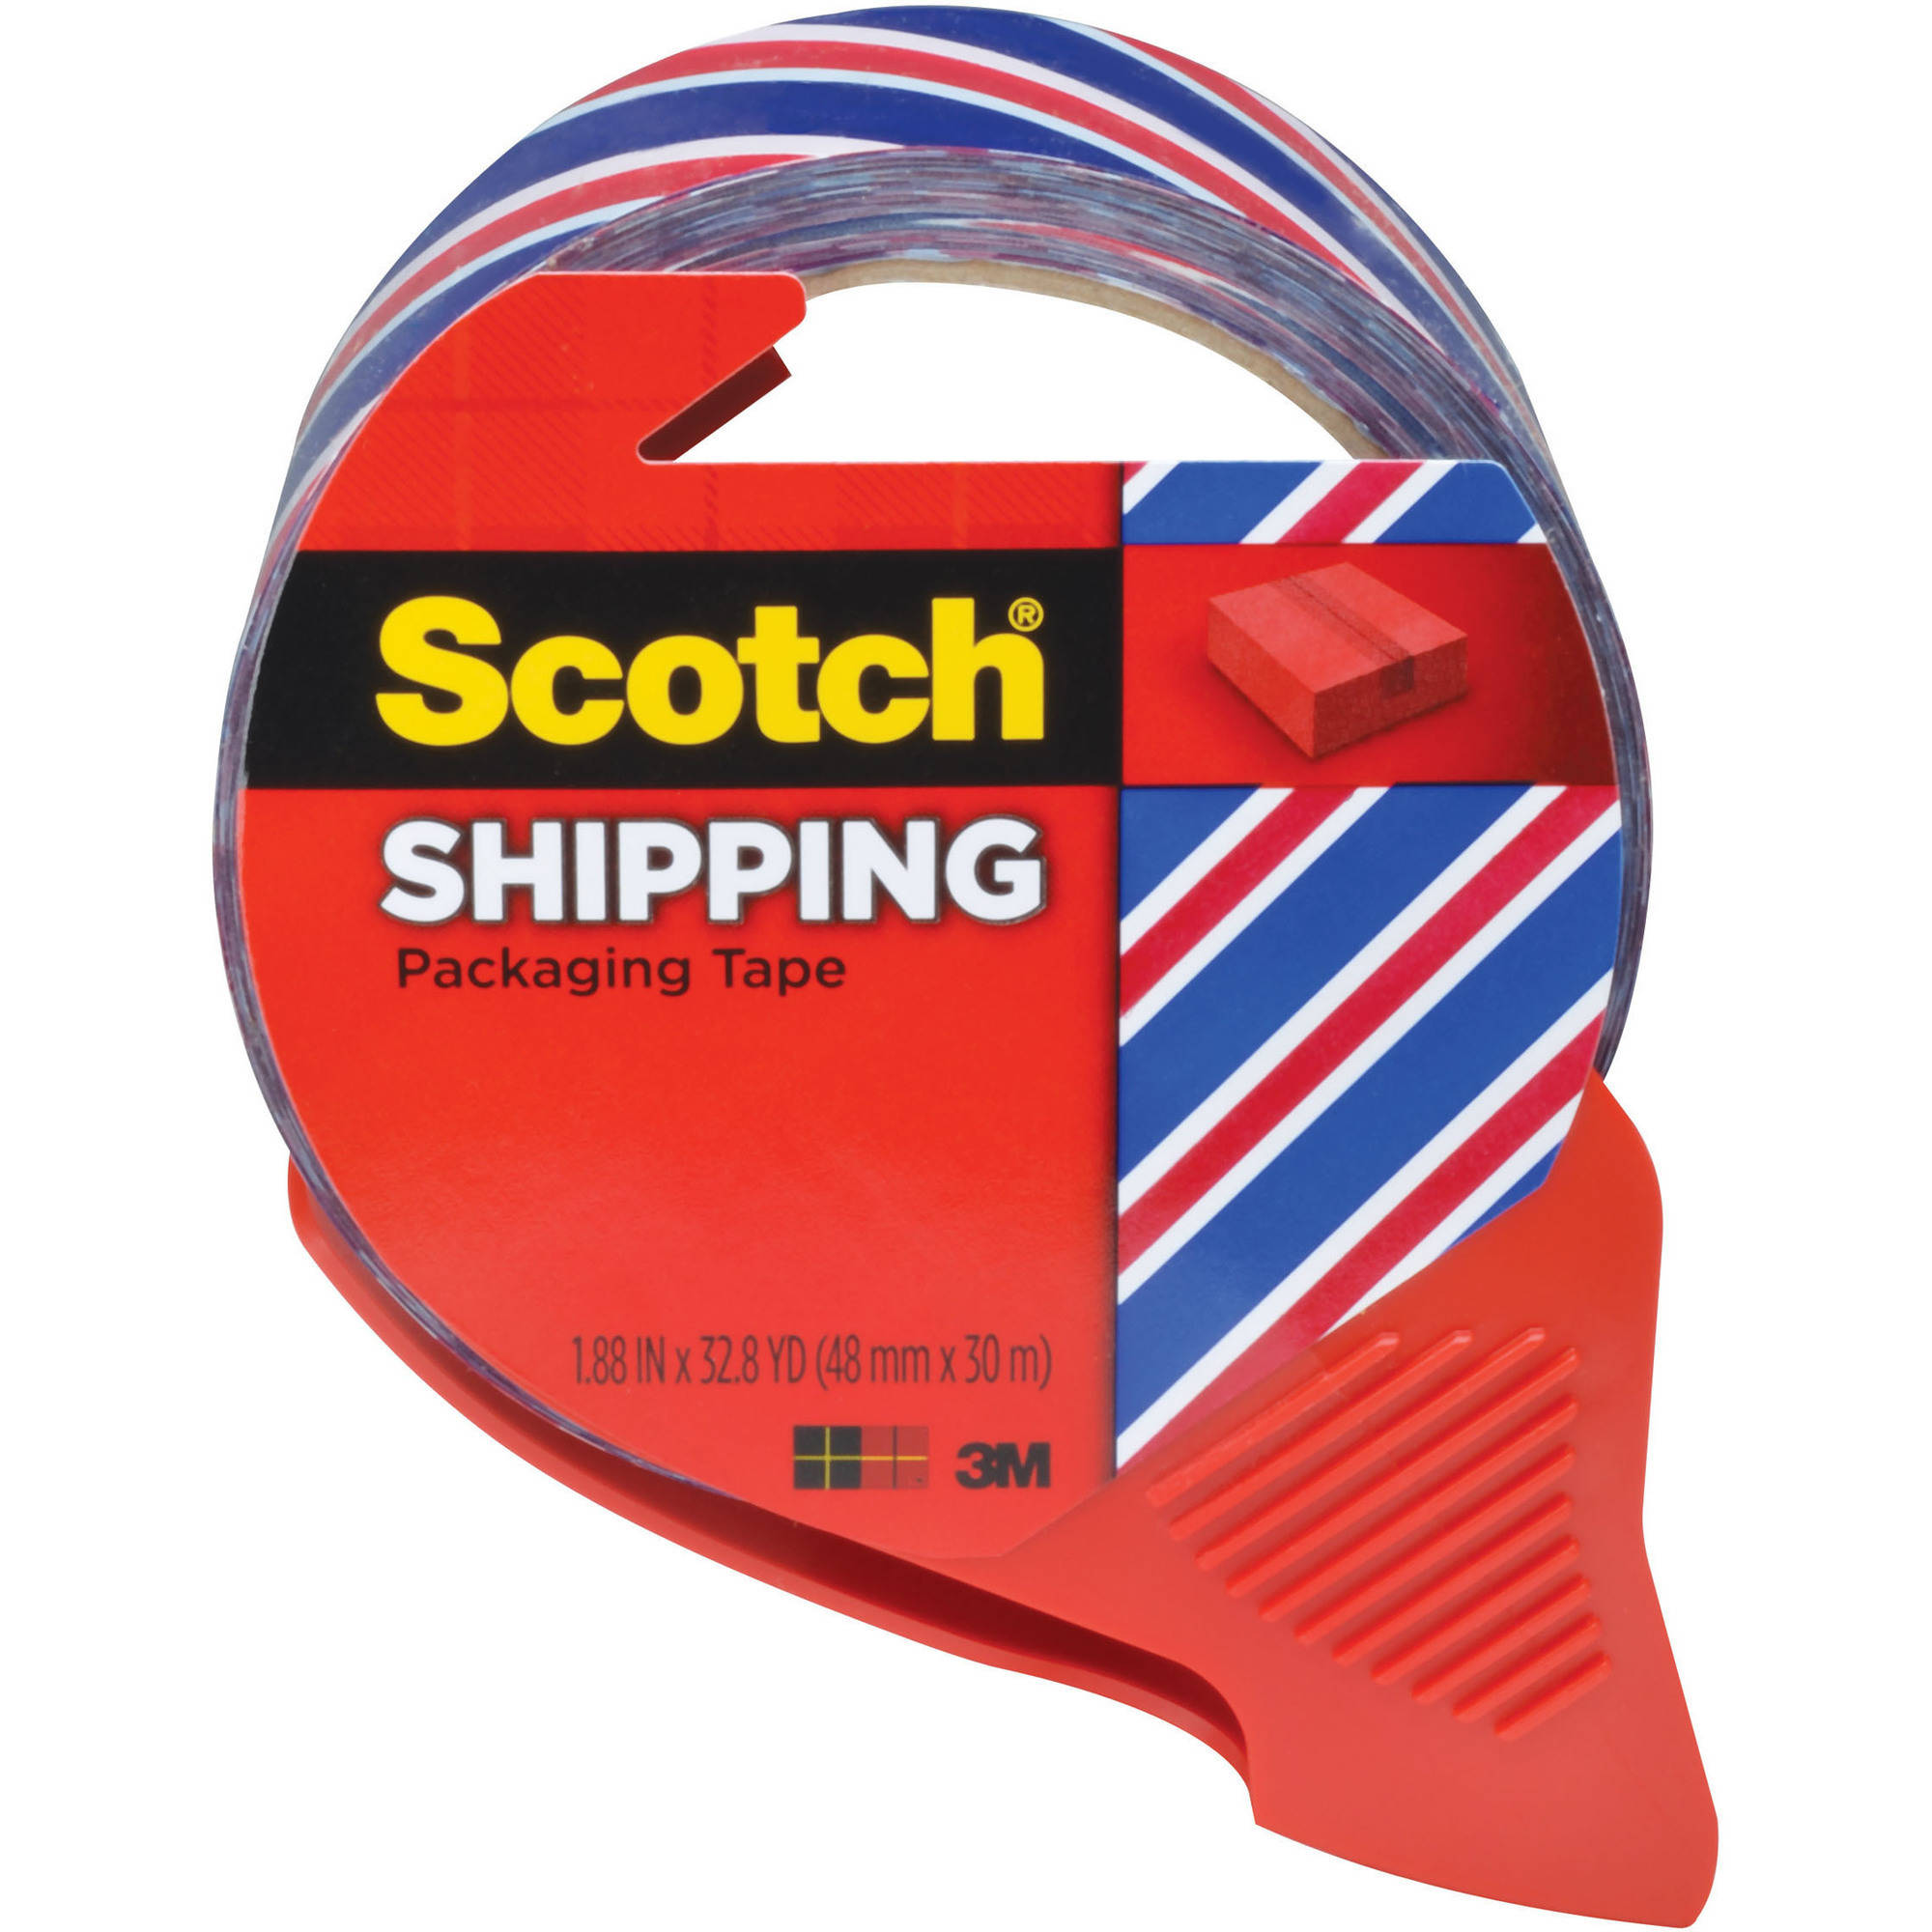 Scotch Special Edition Shipping Packaging Tape with Dispenser, Red, White and Blue Striped Pattern, 3 in. Core, 1.88 in x 32.8 yd,